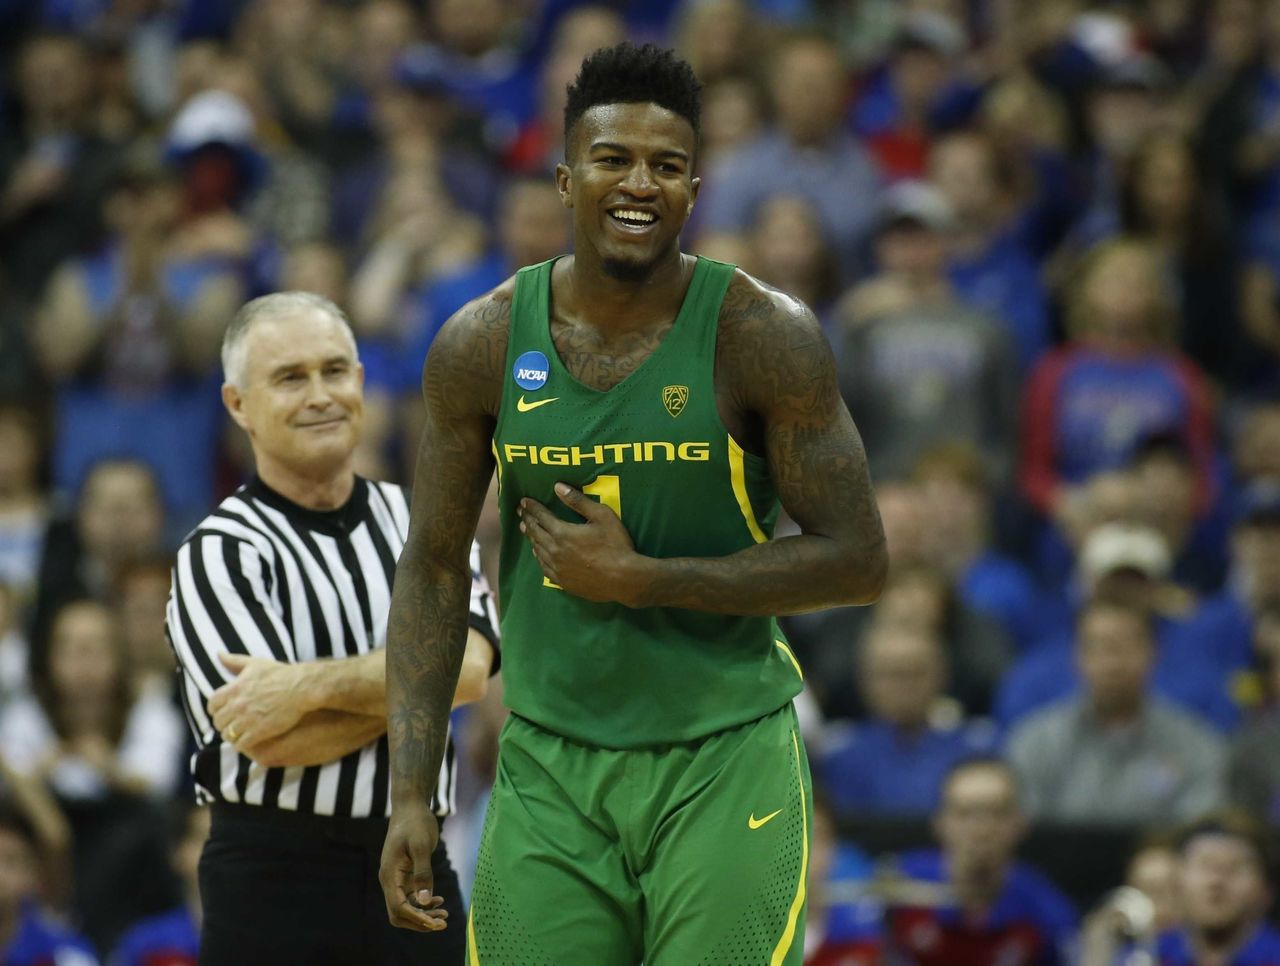 Cropped 2017 03 26t023103z 1190046769 nocid rtrmadp 3 ncaa basketball ncaa tournament midwest regional kansas vs oregon